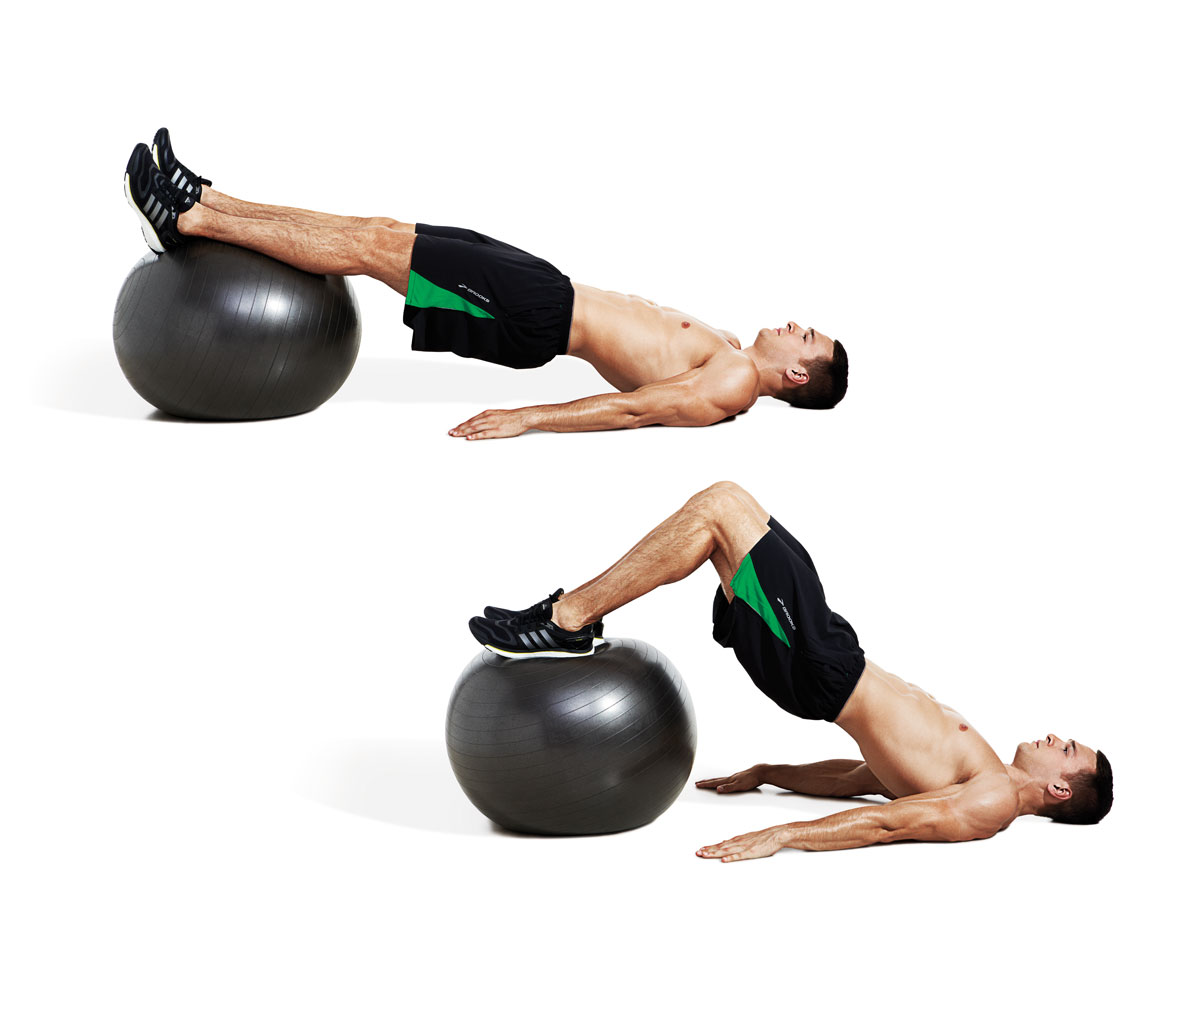 Stability Ball Instead Of Bench: How To Deadlift 400 Pounds